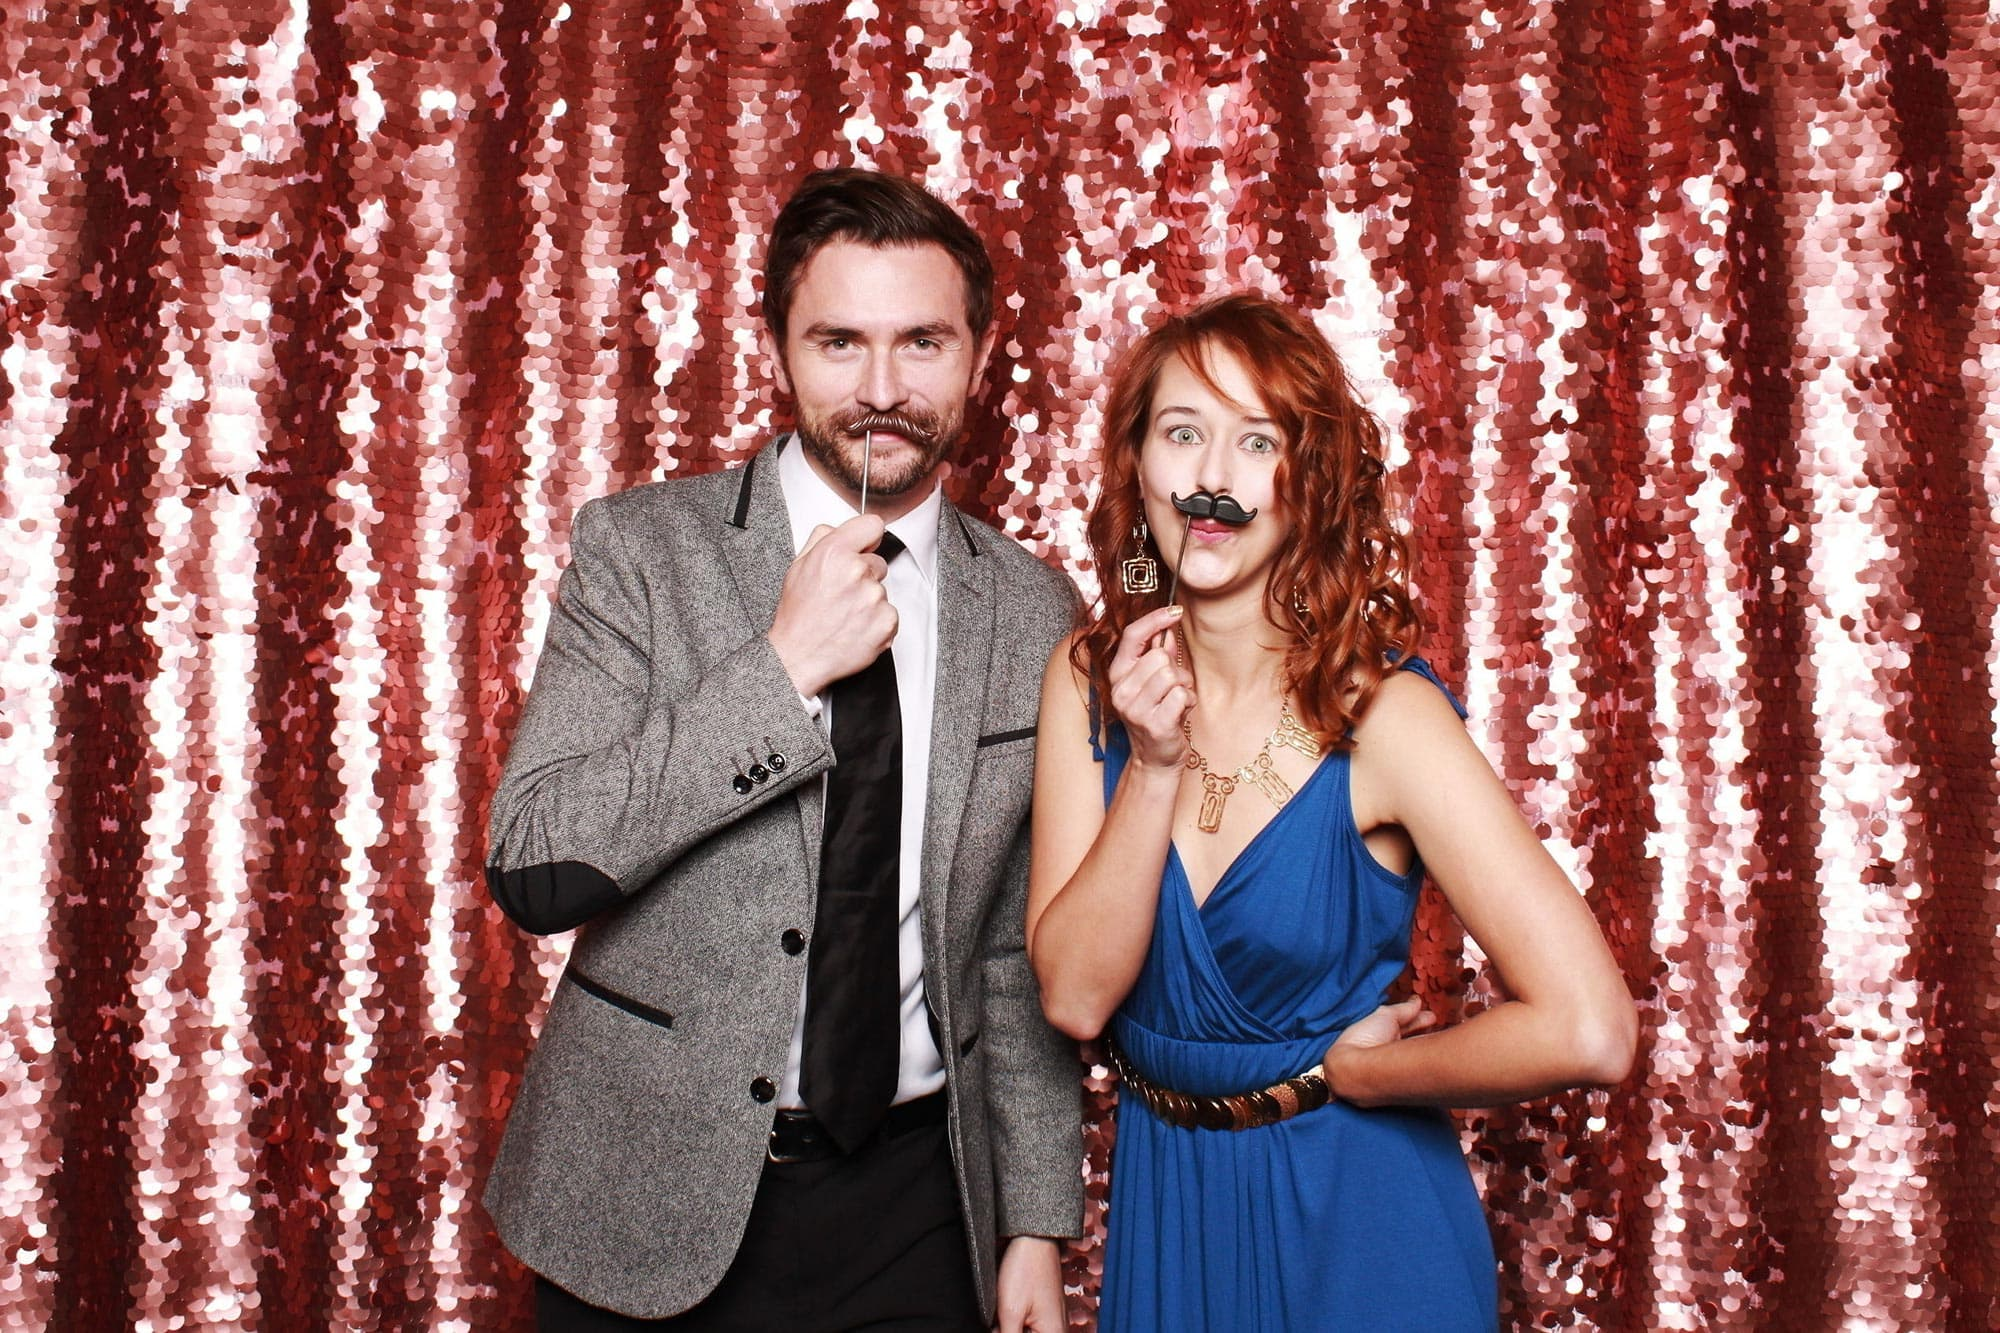 Get your photo booth photos fast